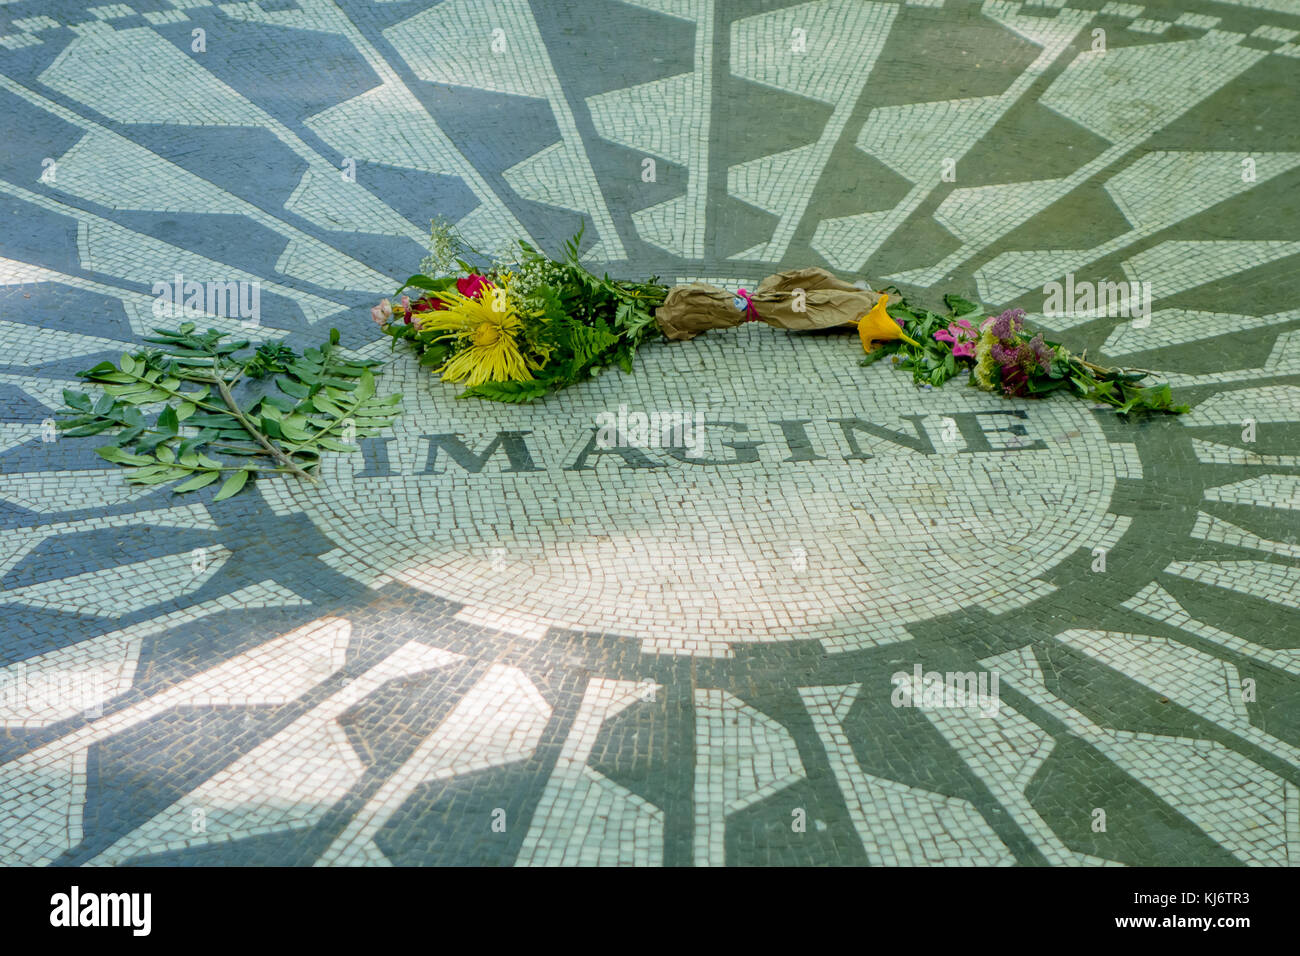 NEW YORK, USA - NOVEMBER 22, 2016: Strawberry Fields mosaic in the floor of Central park in New York City, USA - Stock Image